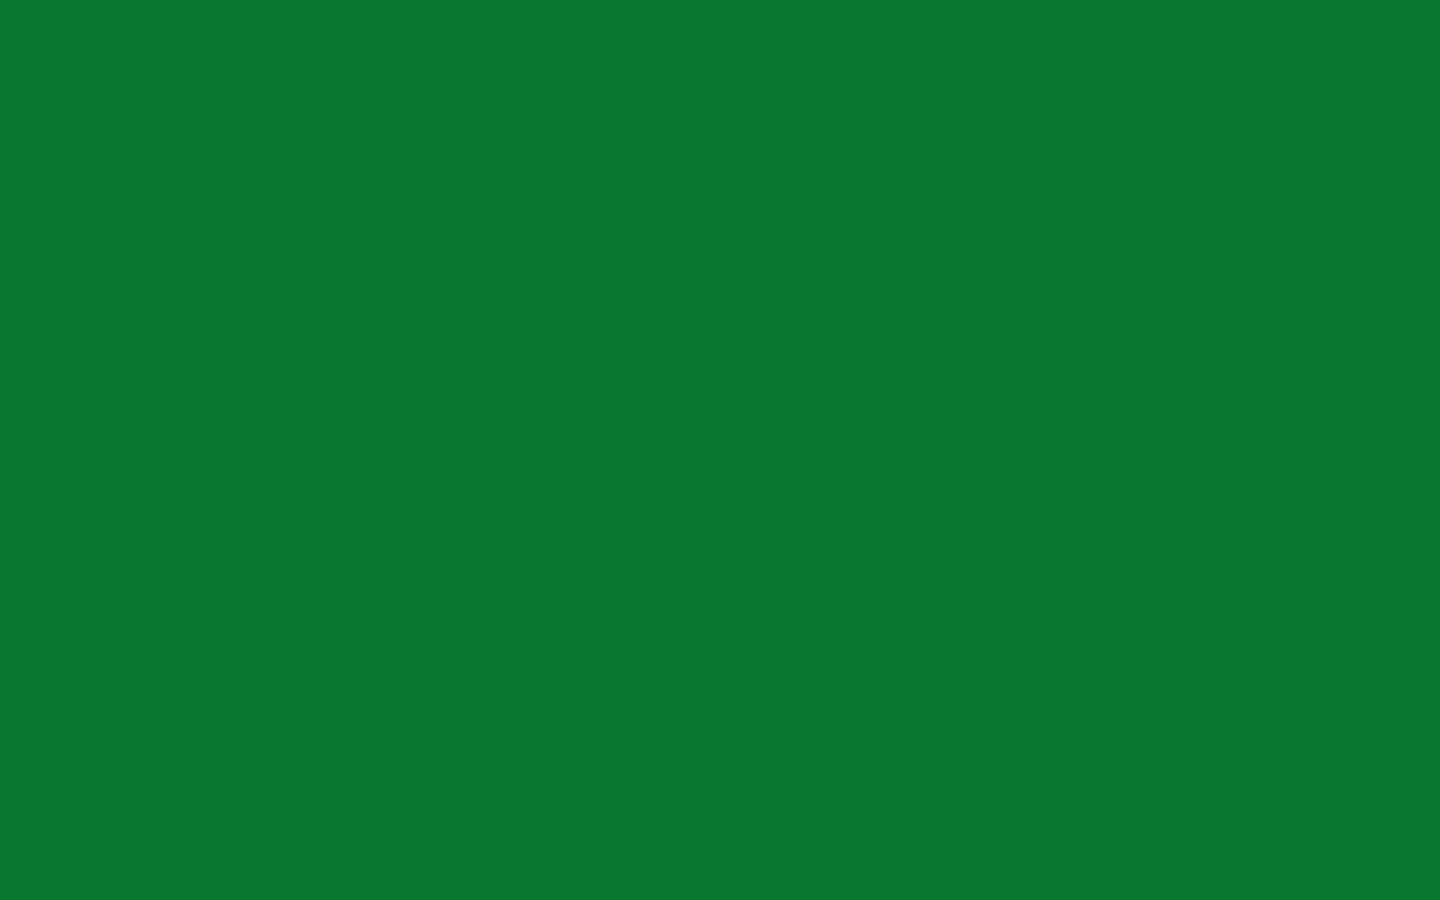 1440x900 La Salle Green Solid Color Background